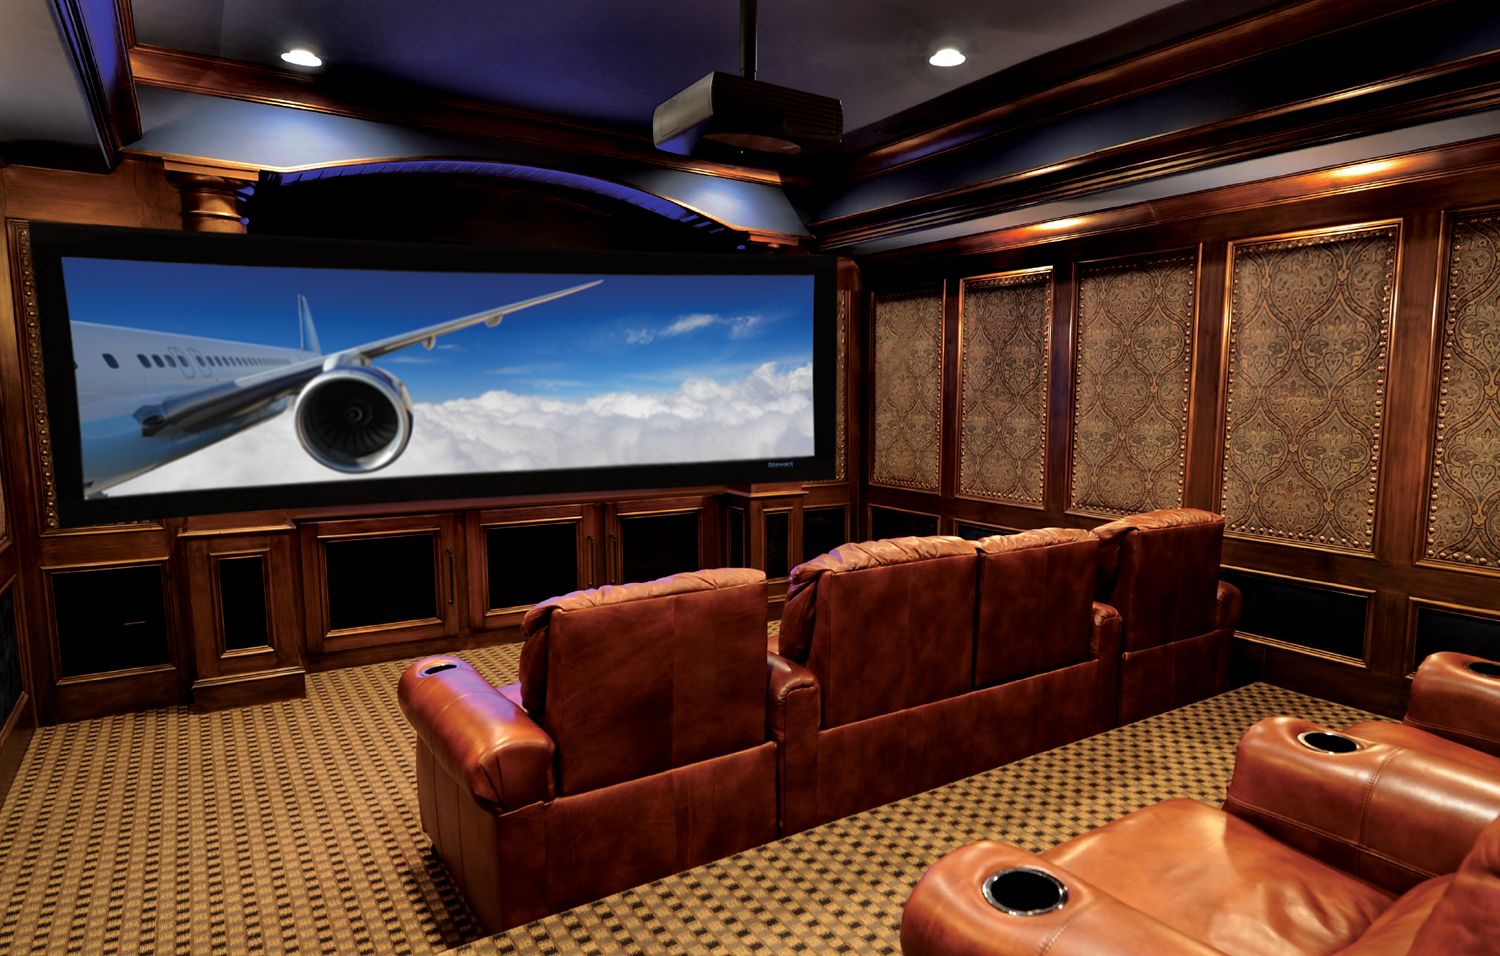 Awesome Basement Home Theater Cinema Room Ideas Theatre - Awesome media room designs